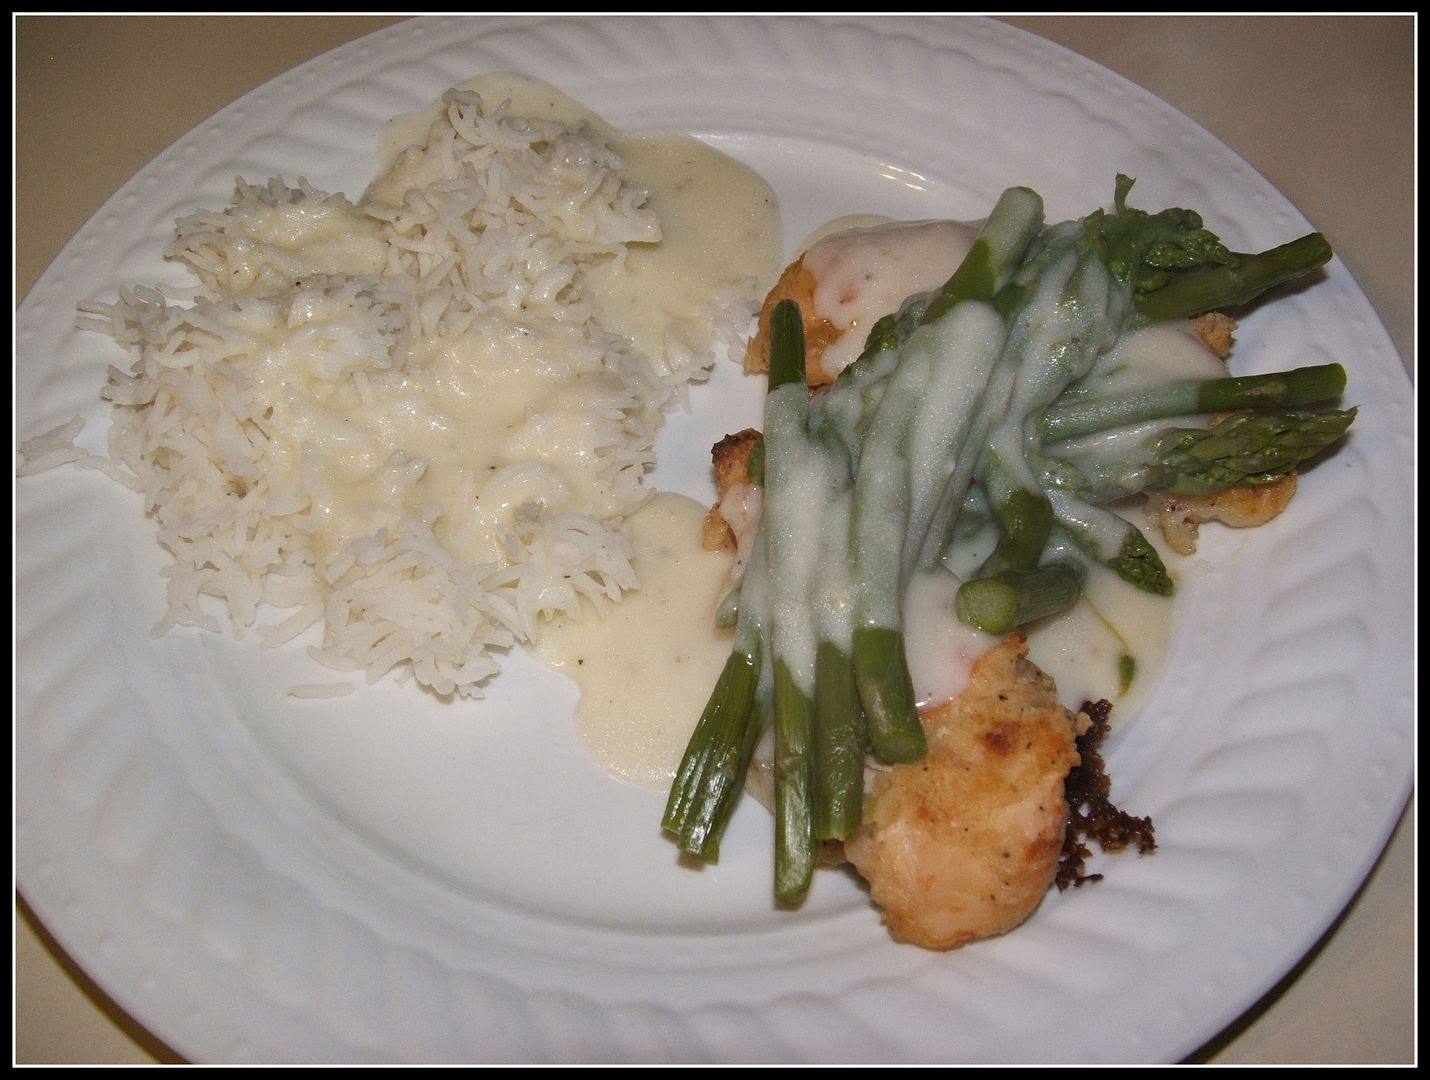 Lemon Asparagus Chicken by Angie Ouellette-Tower for godsgrowinggarden.com photo 009_zpsab5c5eab.jpg